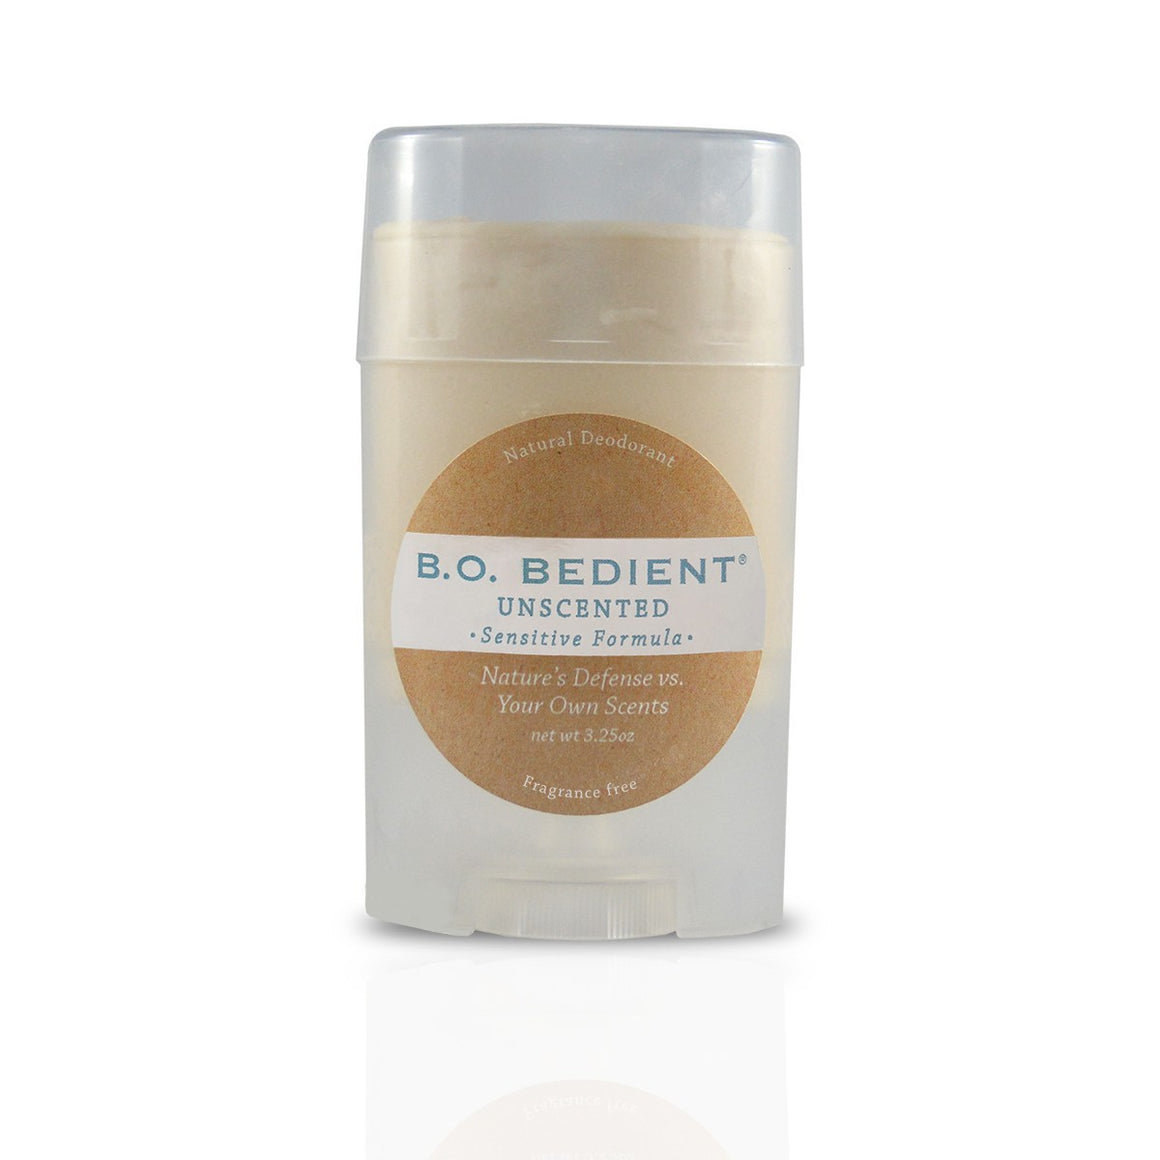 All Natural Deodorant - Unscented Sensitive Stick